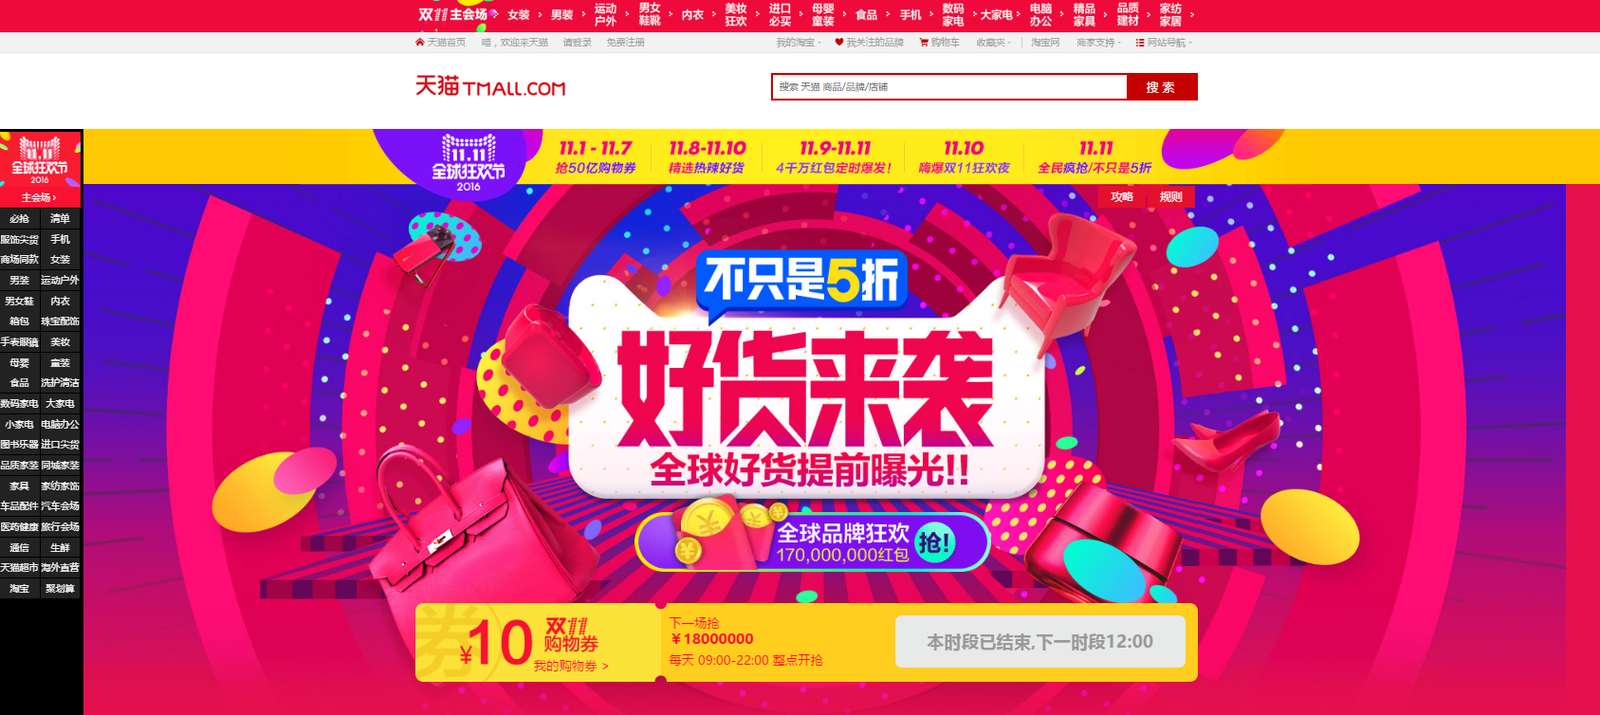 11.11 Global Shopping Festival 2016 : Official program of Tmall Alibaba big event